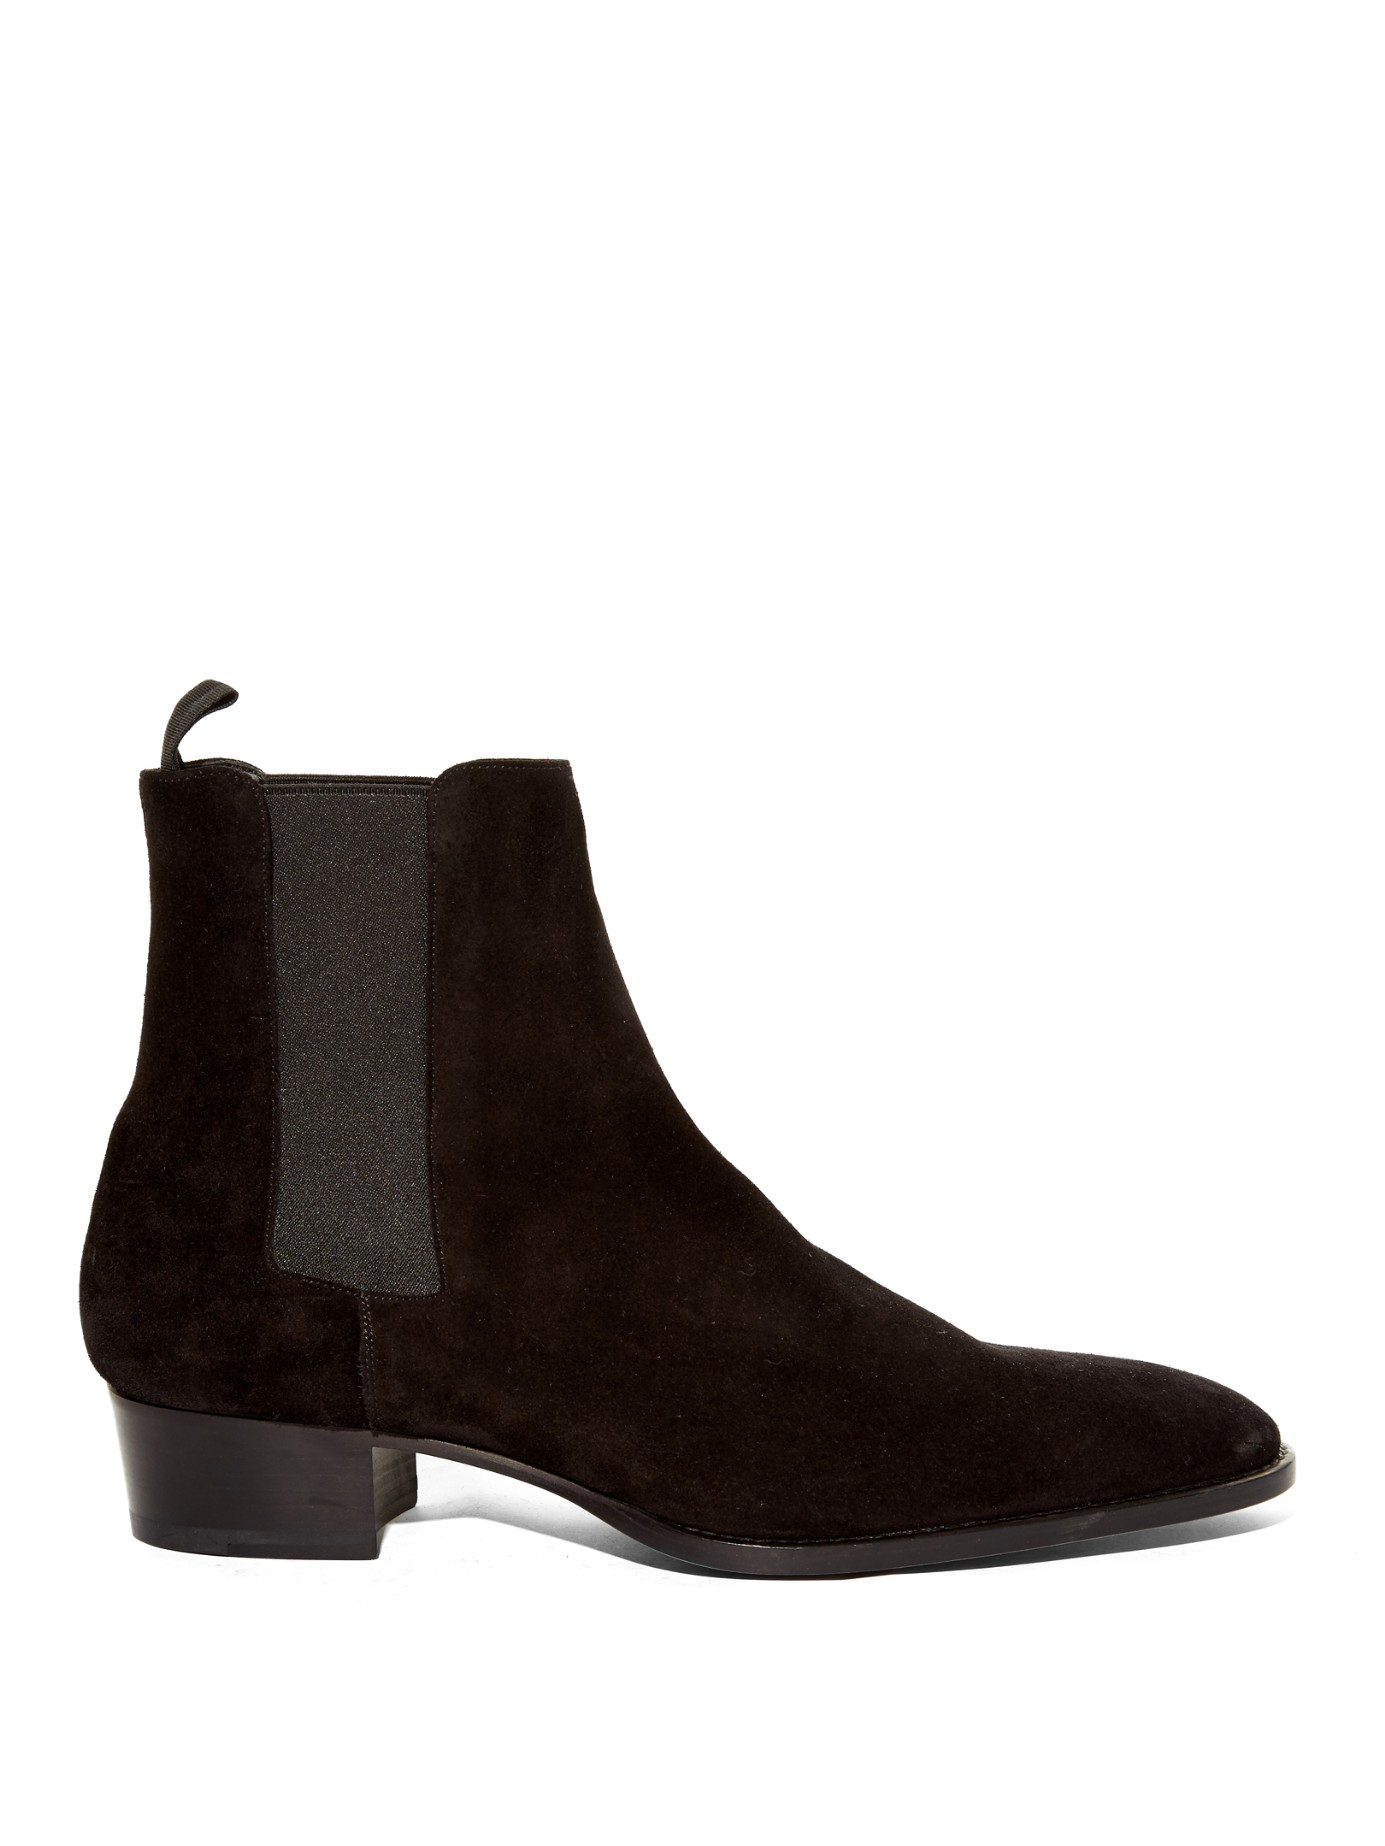 Fantastic Lyst - Asos Activity Suede Chelsea Boots In Black